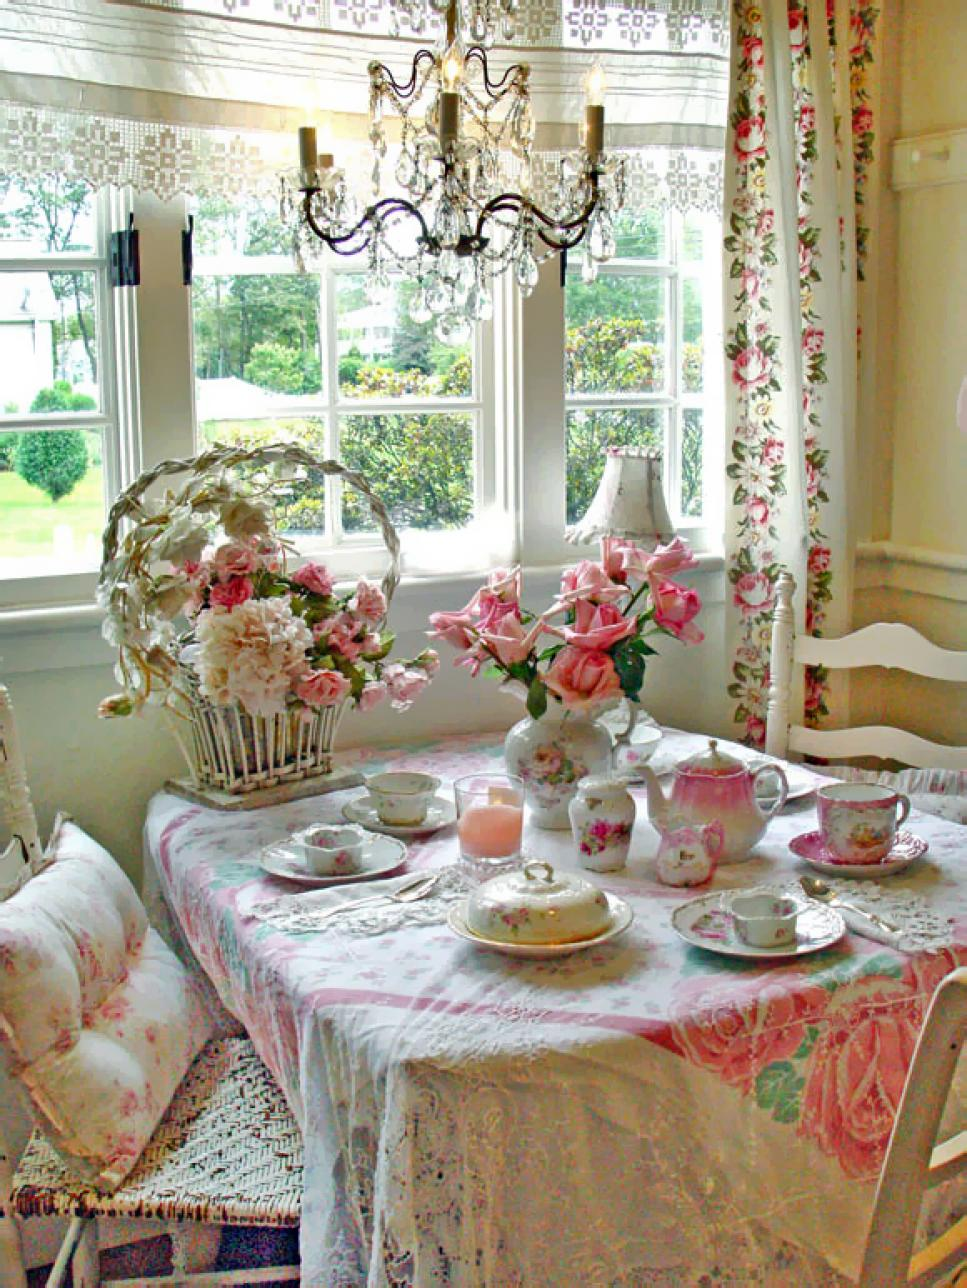 Shabby chic decor hgtv Home design ideas shabby chic